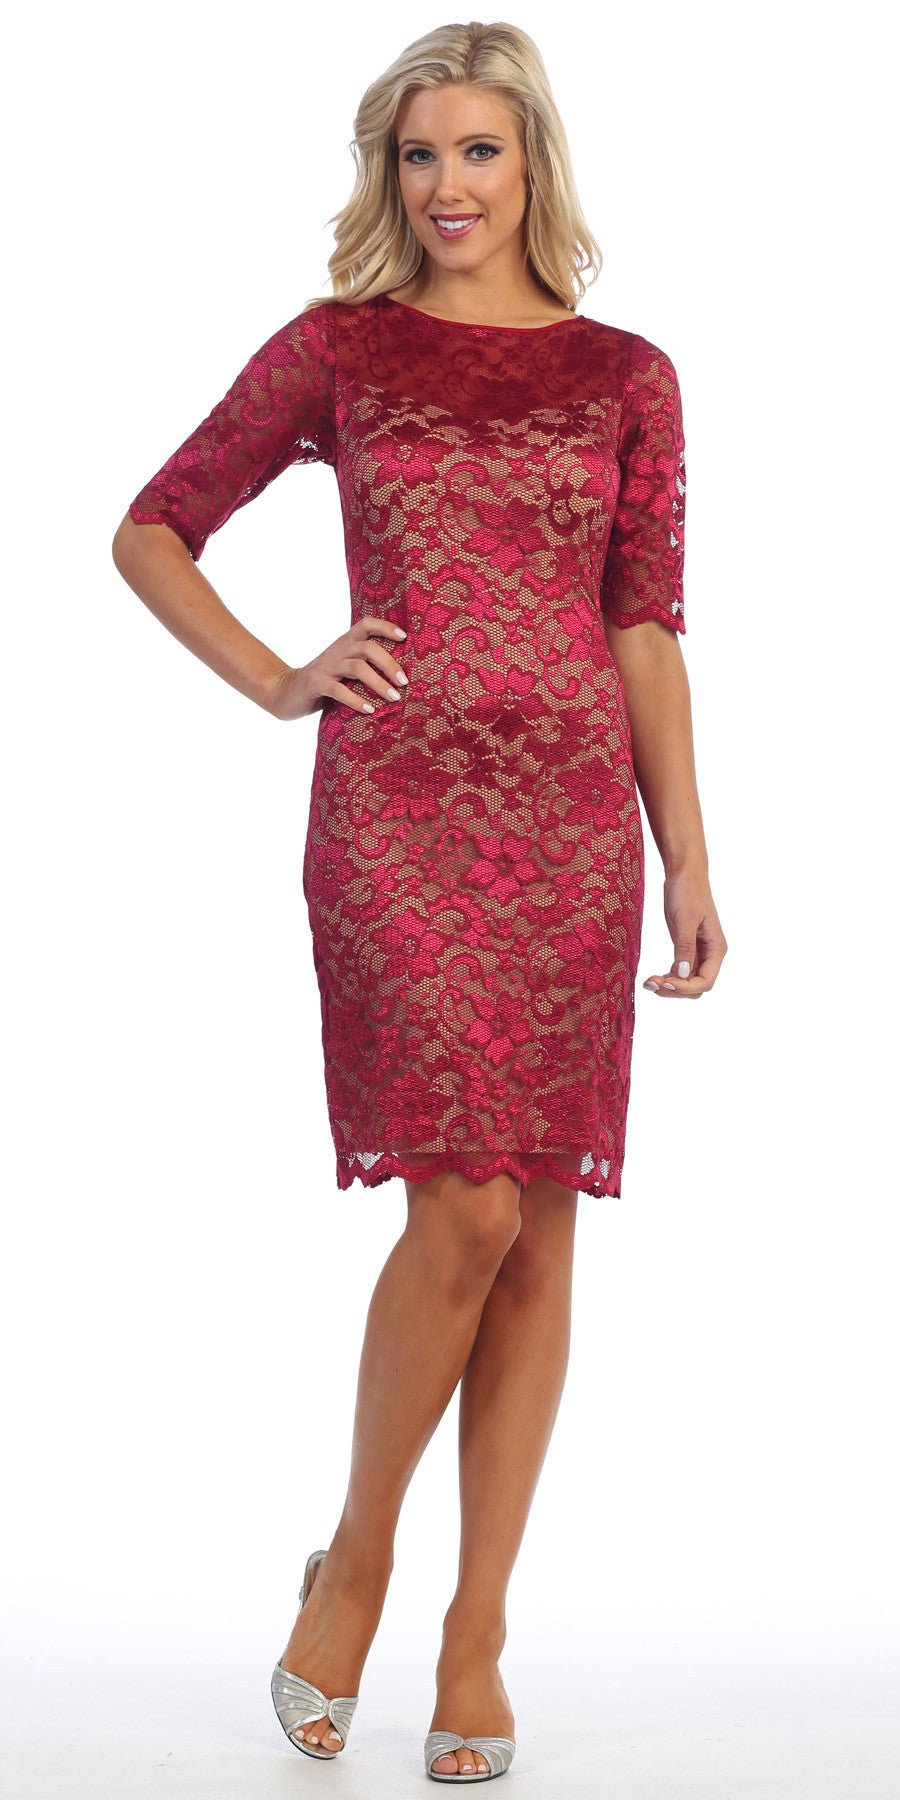 Lace Cocktail Dress Knee Length Burgundy/Nude 3/4 Length Sleeves